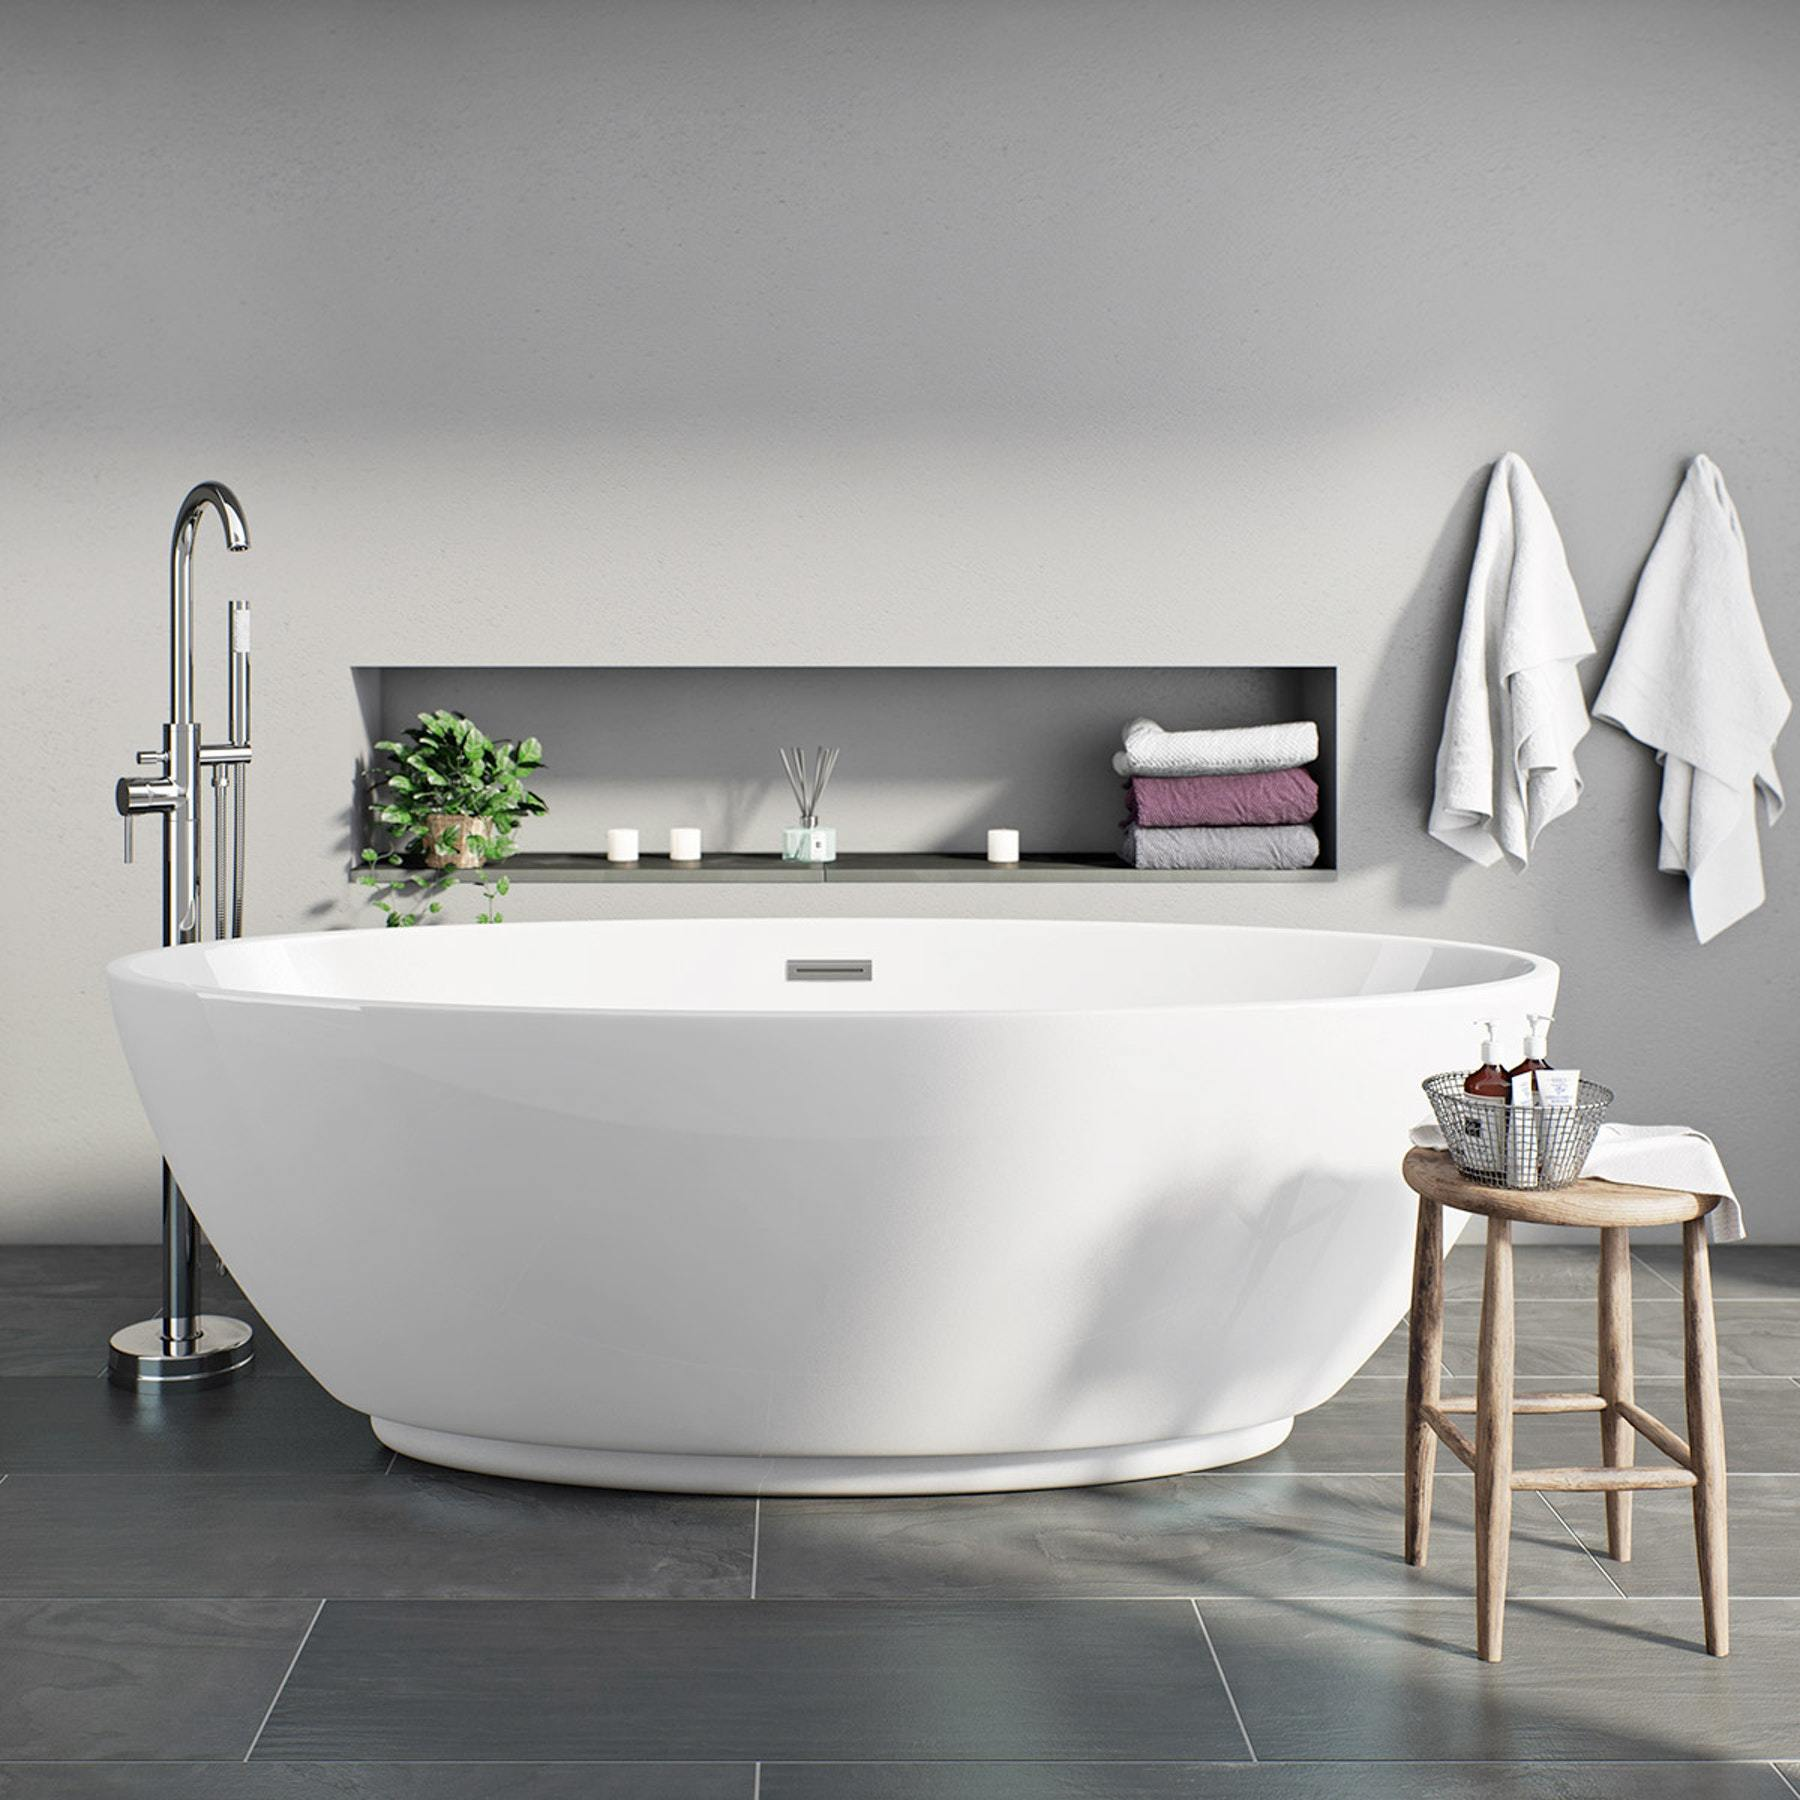 Mode Harrison Freestanding Spa Bath